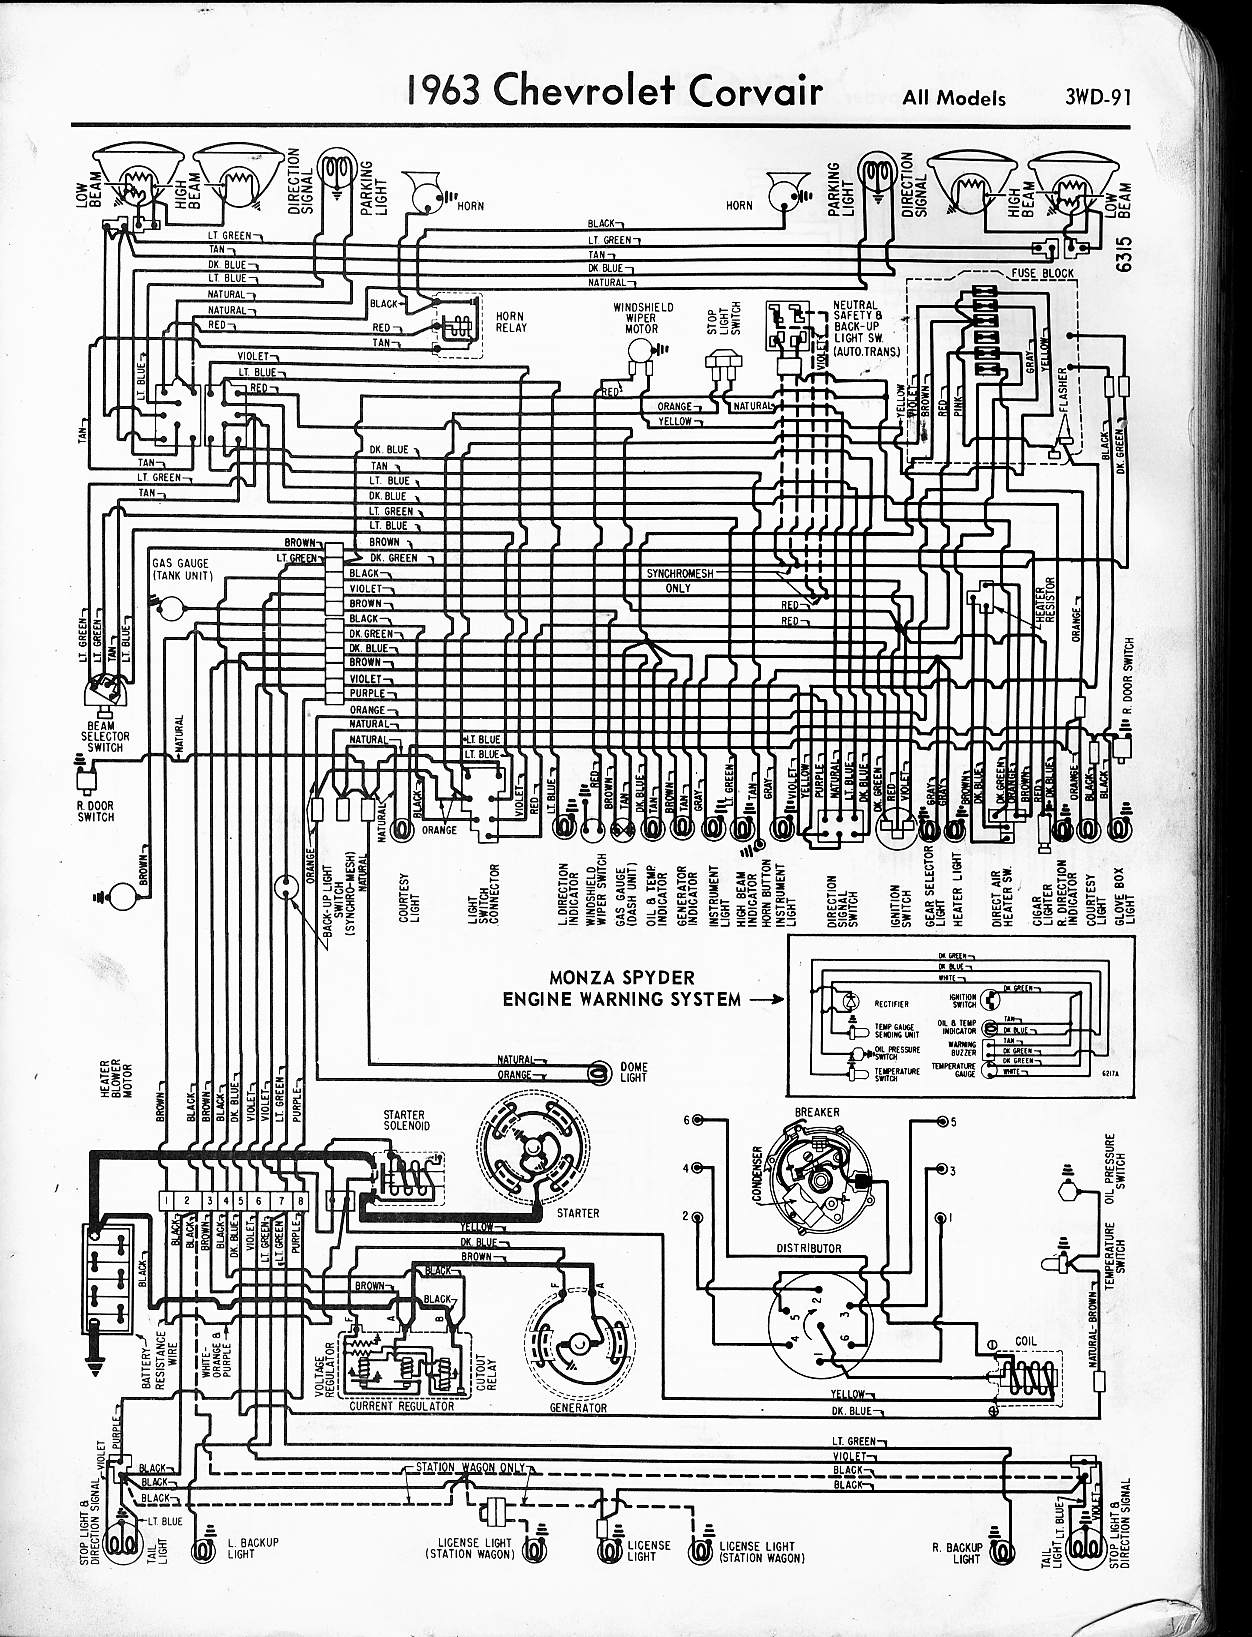 wiring diagram for a 2001 chevy camaro 1965 chevy truck wiring diagram | free wiring diagram wire diagram for a 1965 chevy c 20